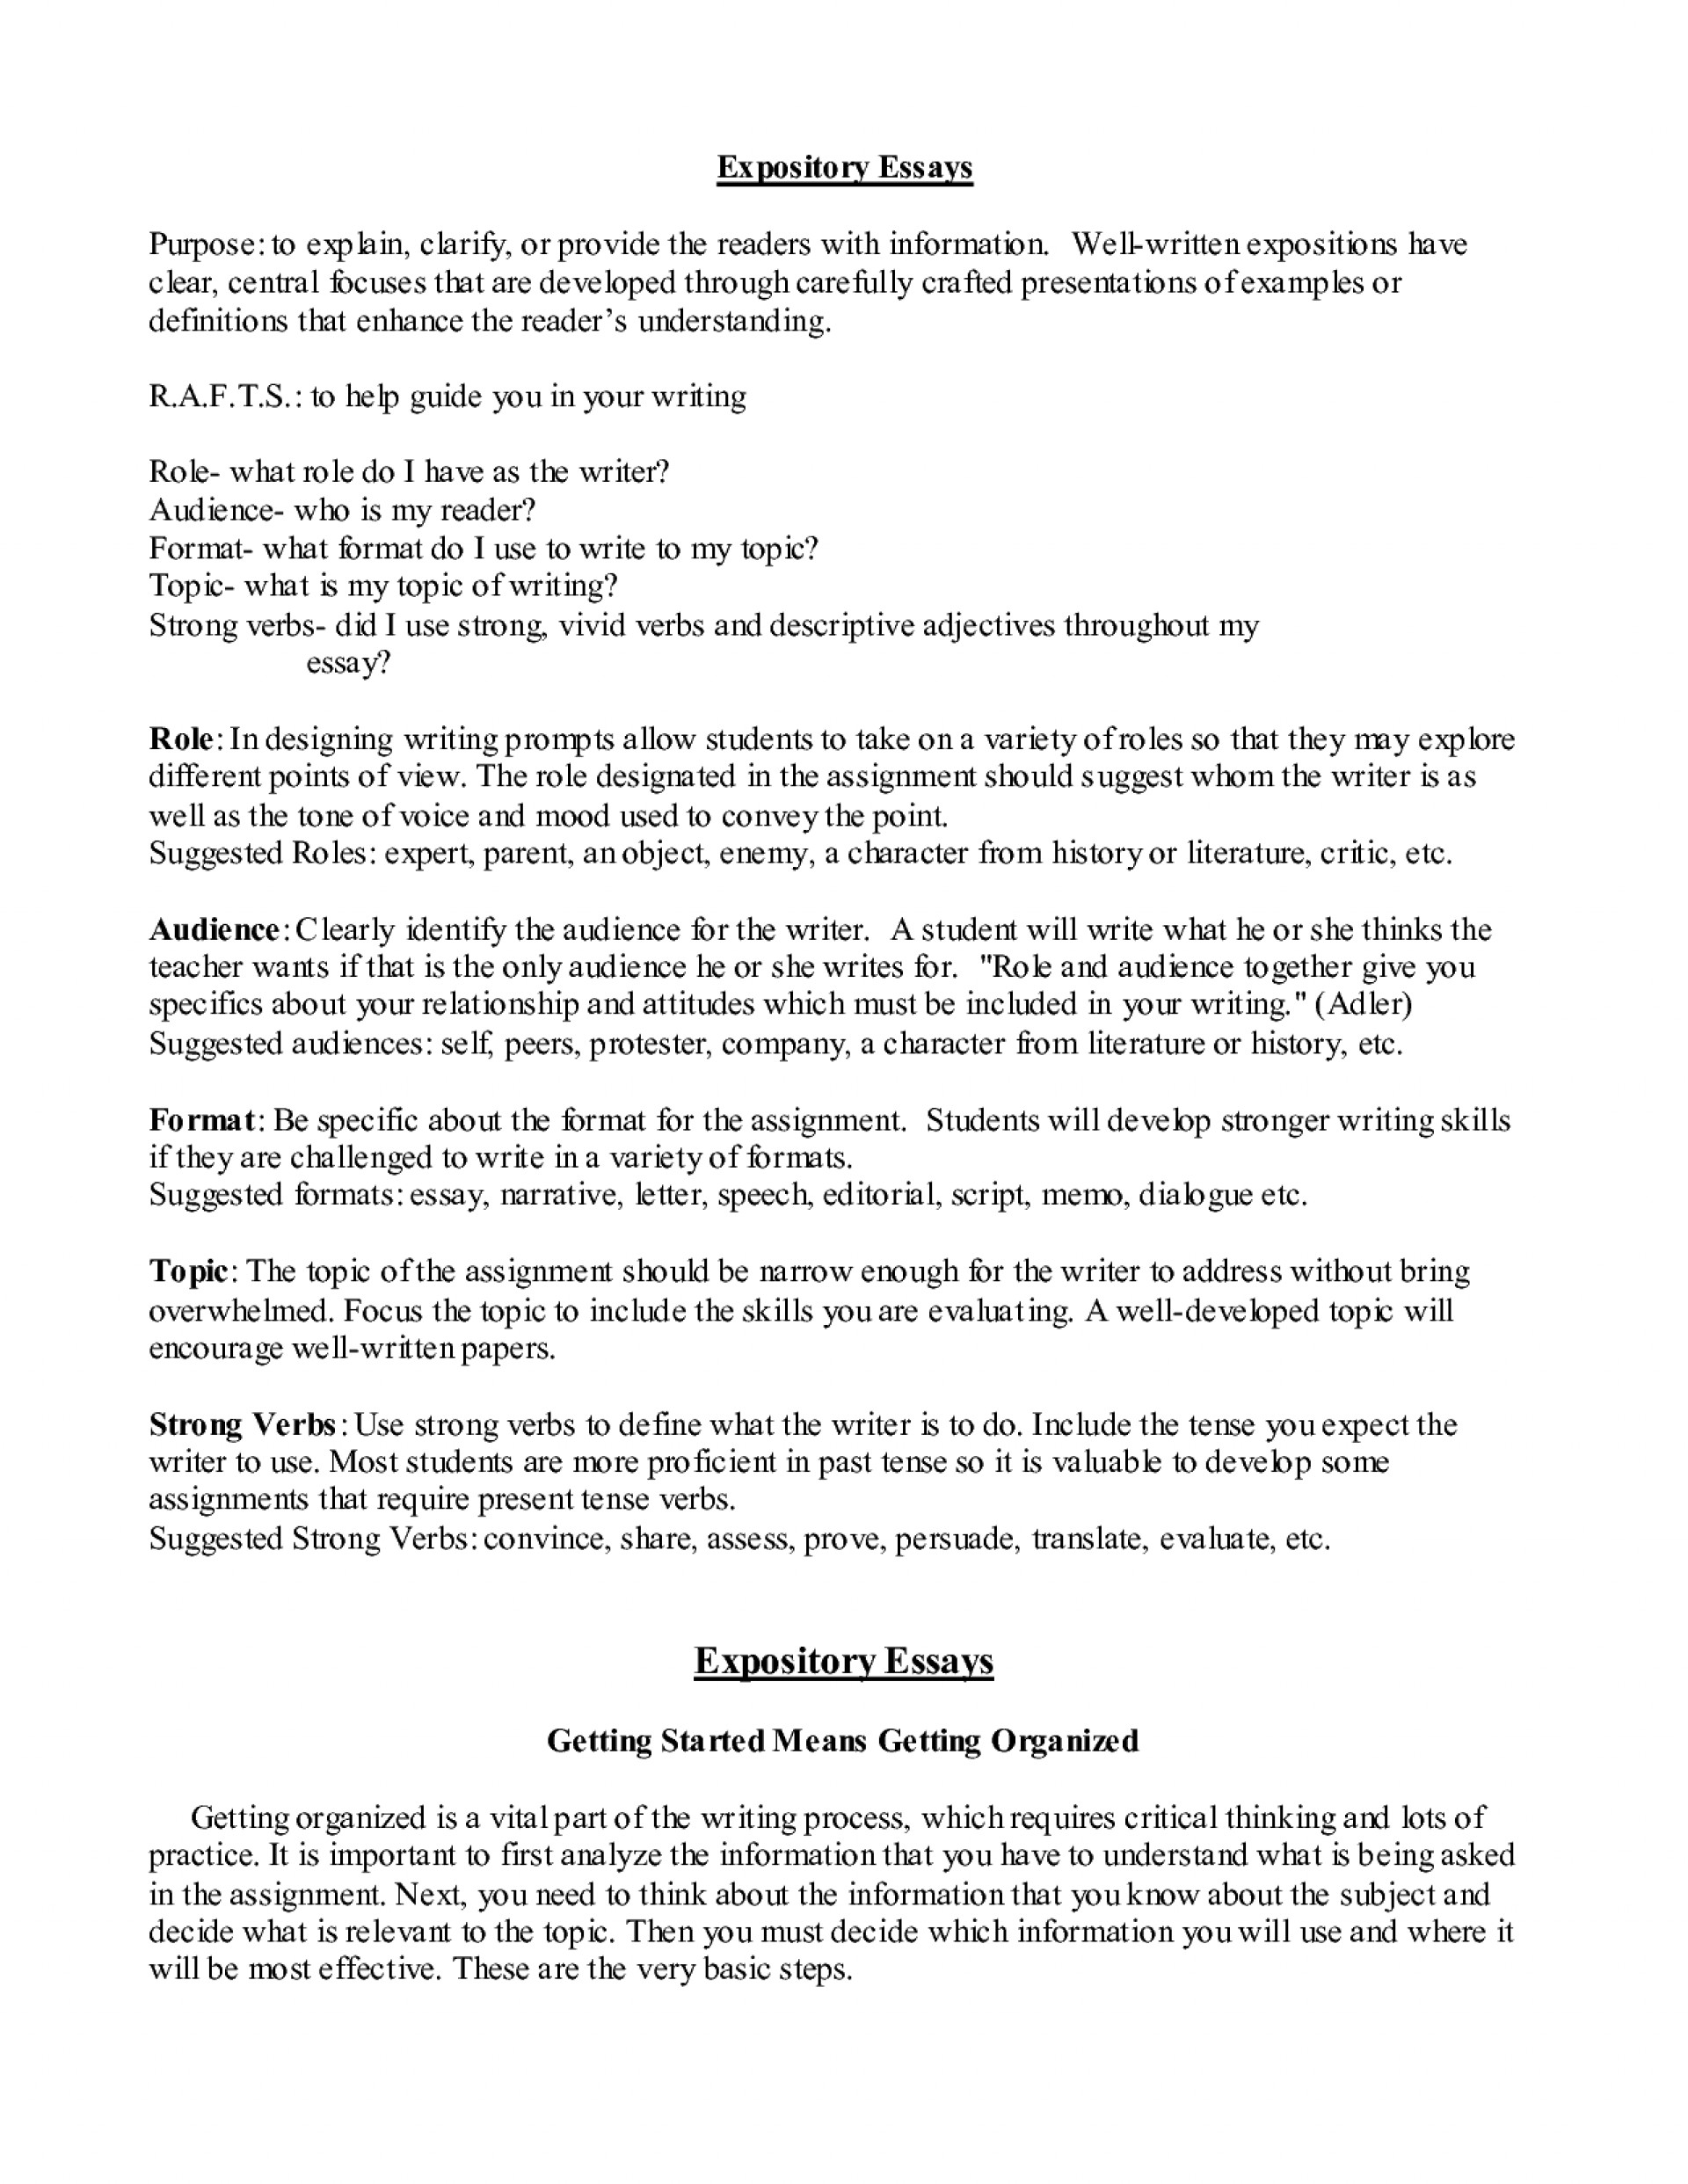 011 How Are Persuasive Essay And An Expository Different Example Thesis Statement Examples For Writers Pinterest Ideasher English Singular A Select The Correct Answer. 1920